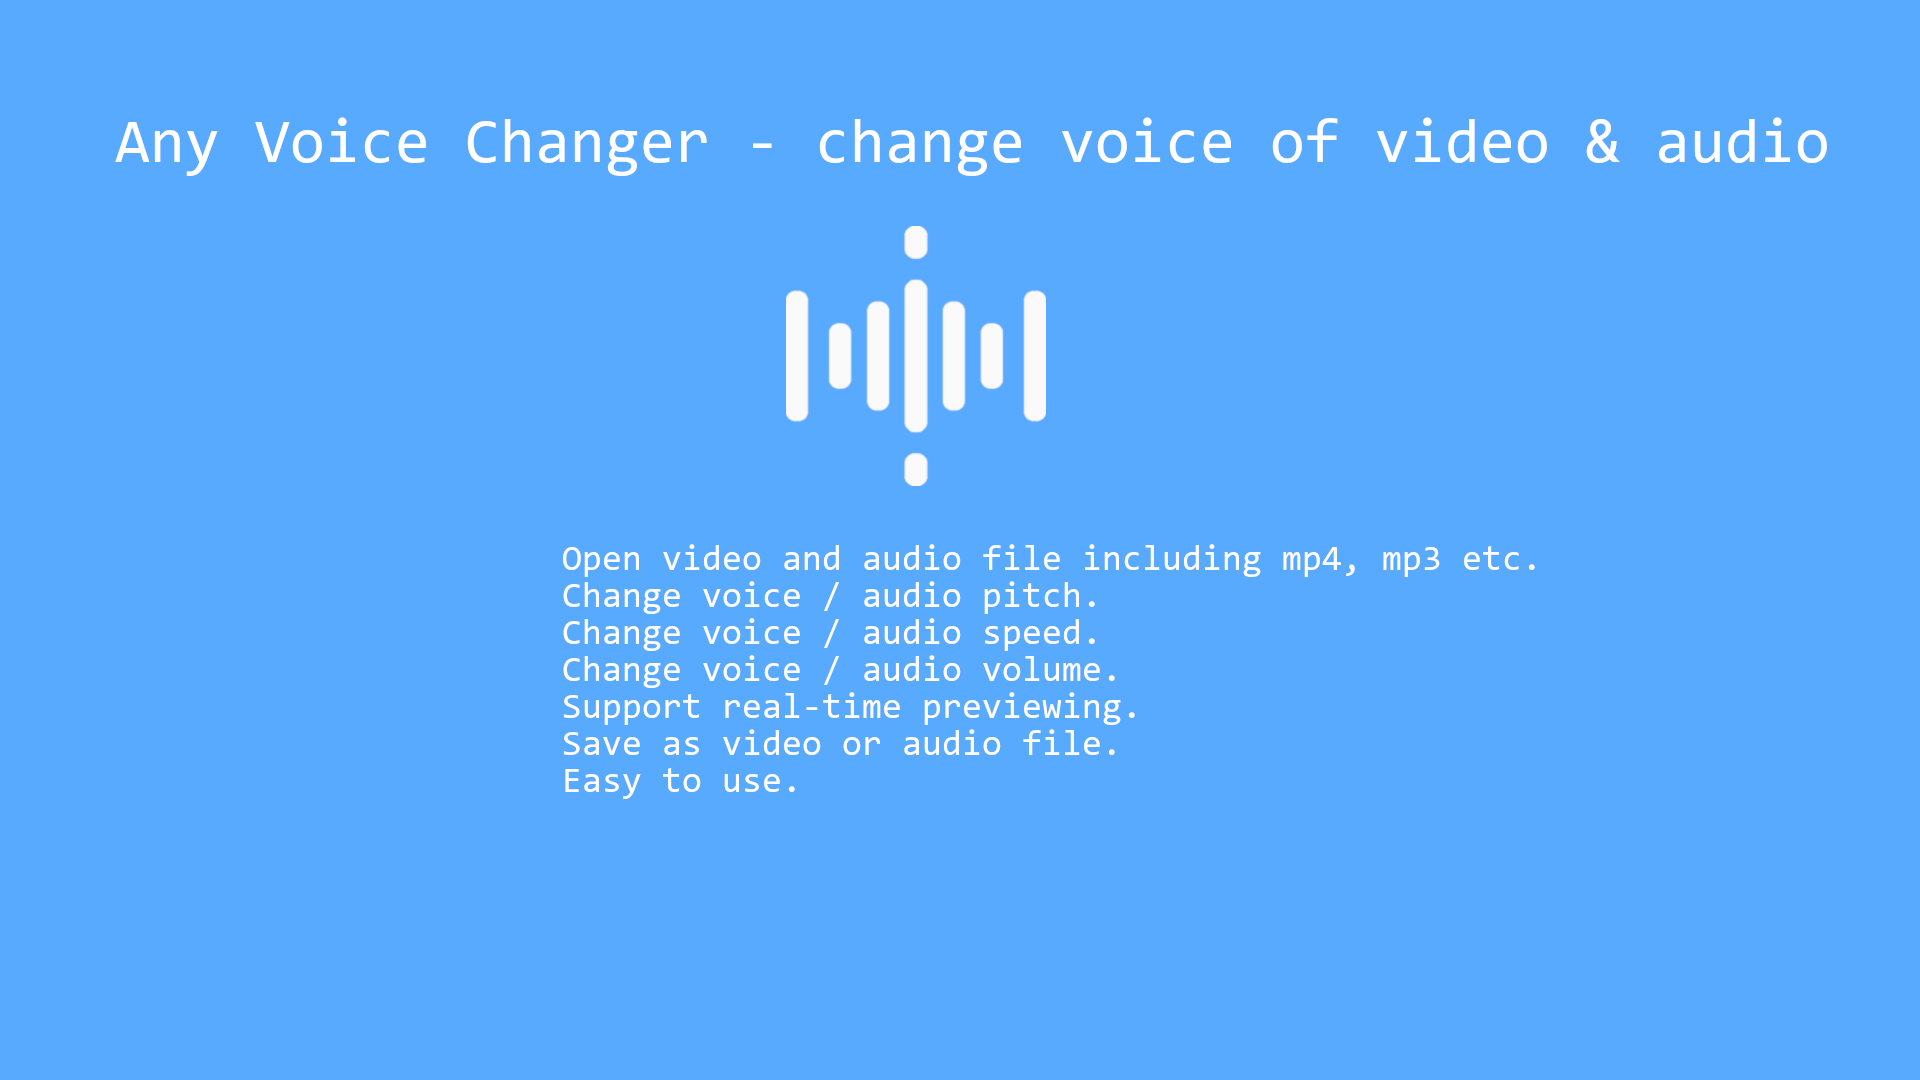 Get Any Voice Changer: change voice, change volume, speed of video and  audio file - Microsoft Store en-GB